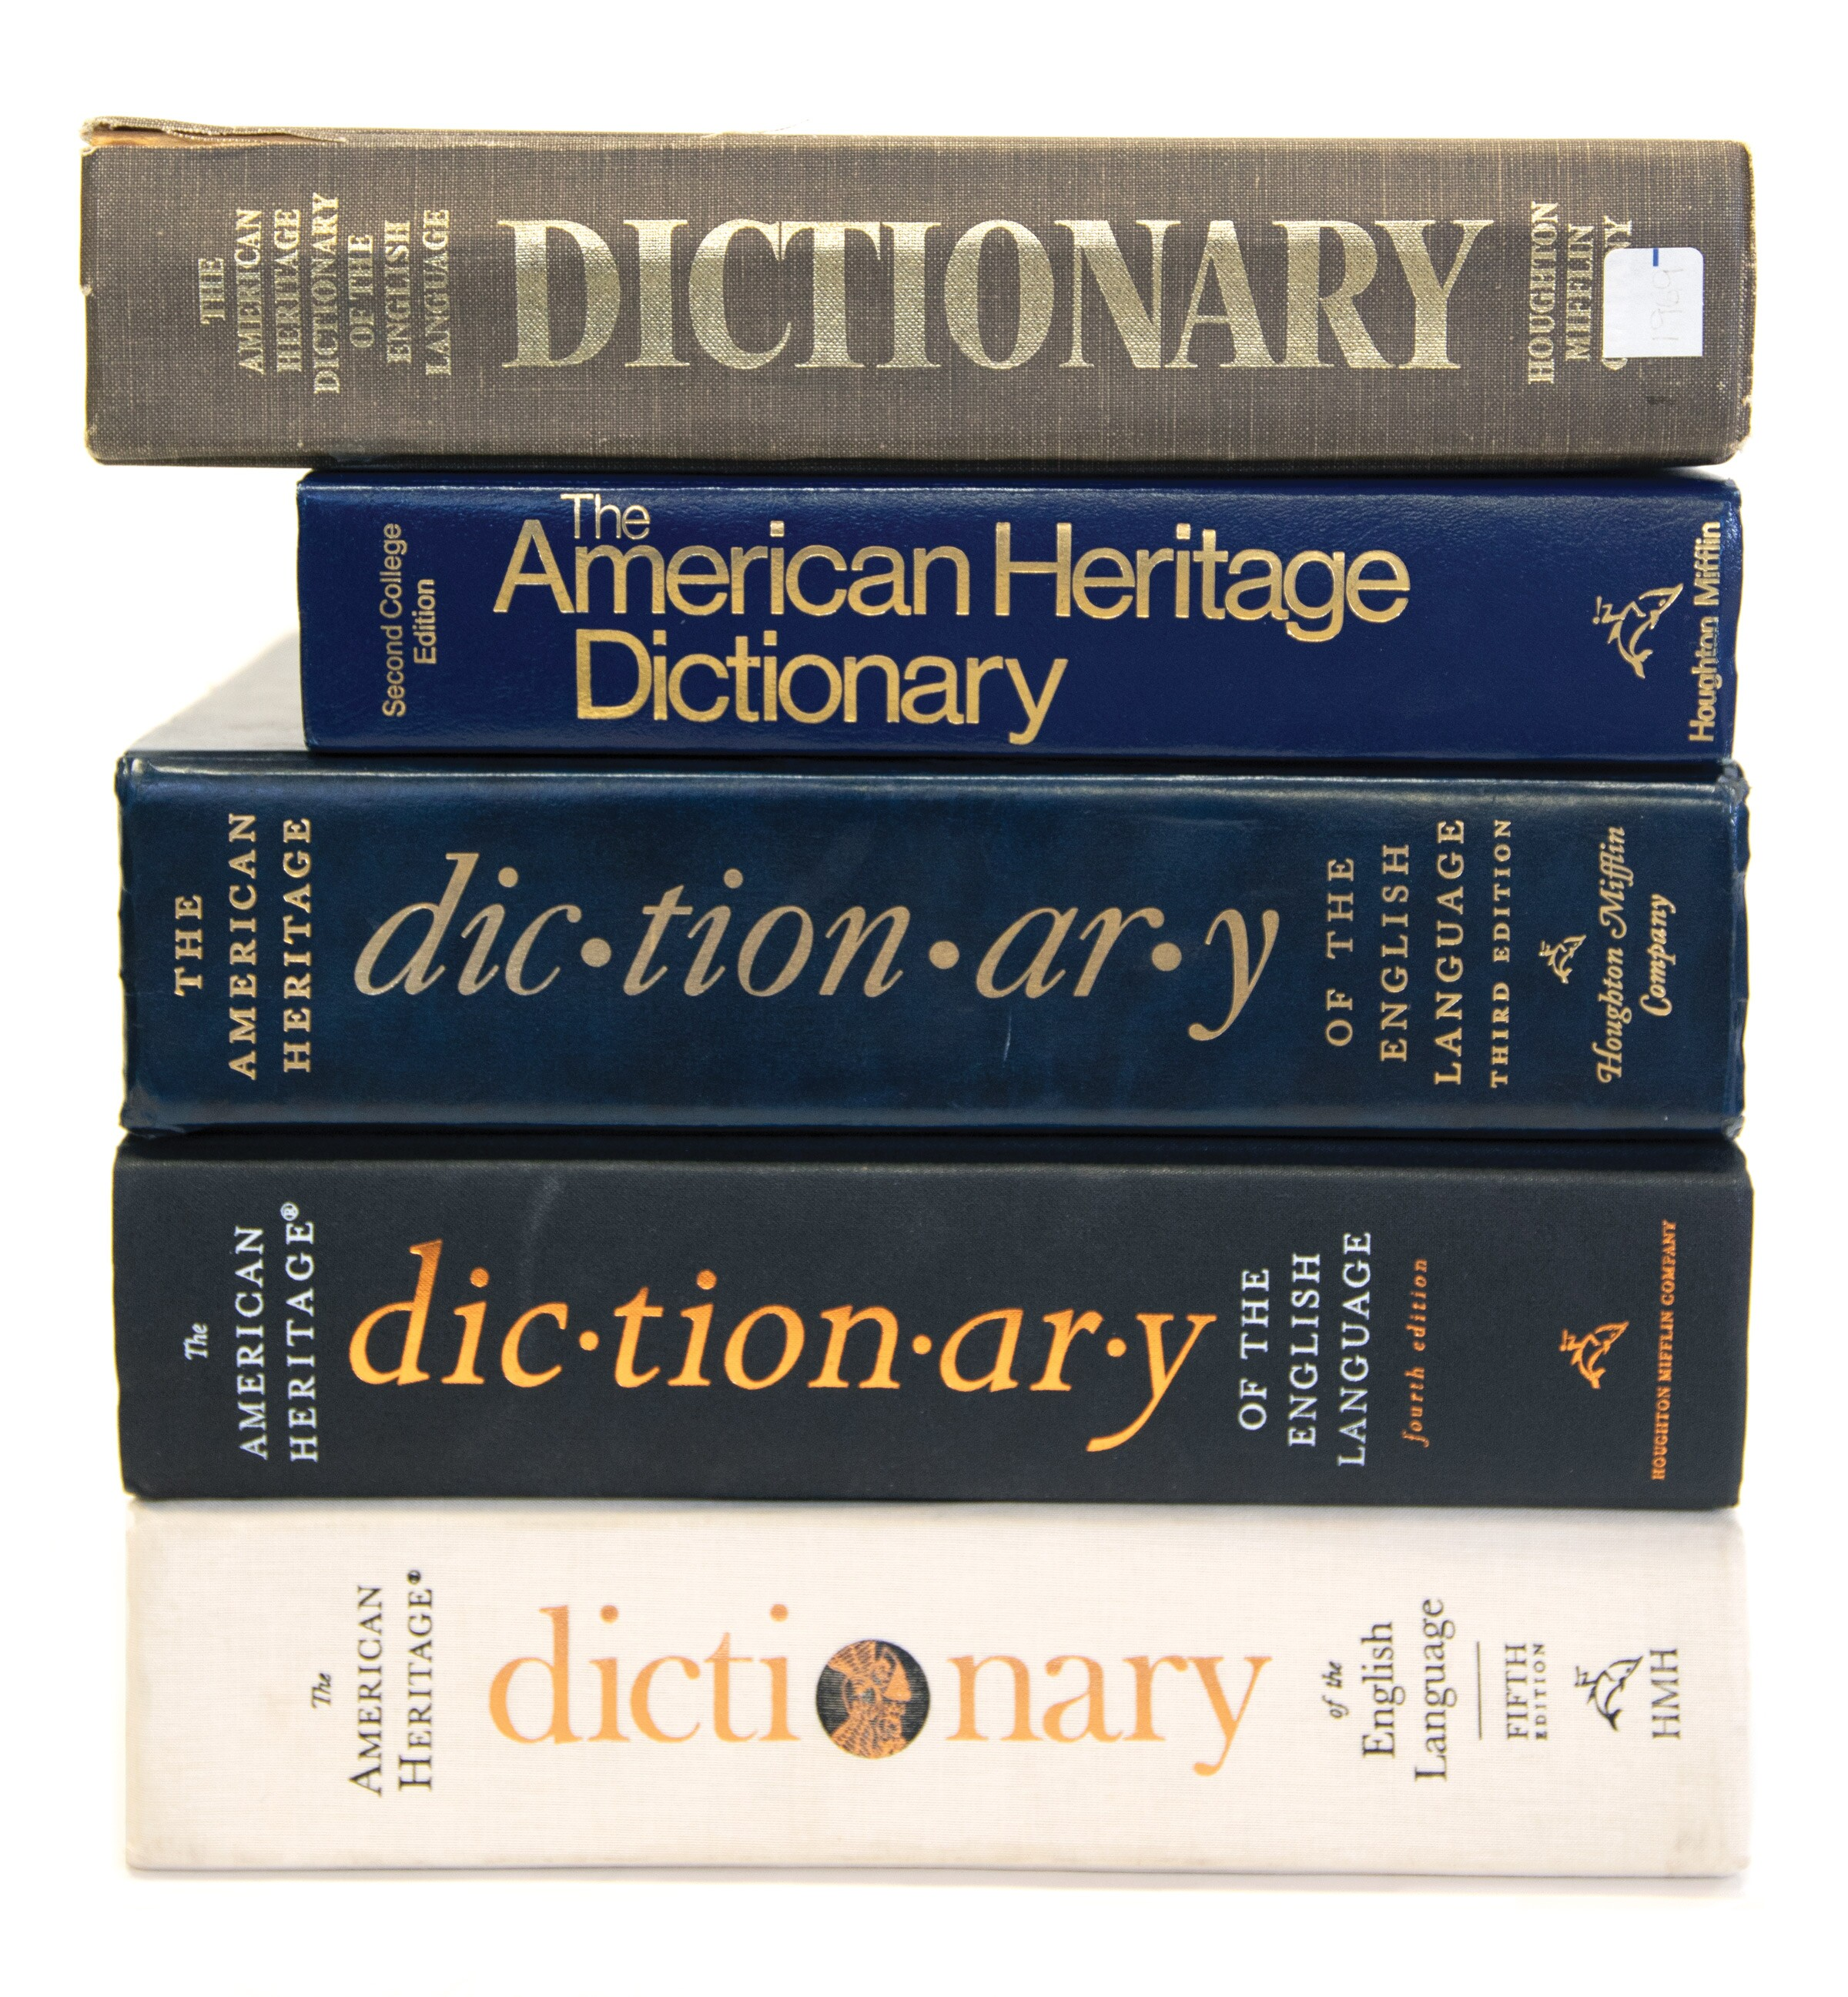 Skinner - American Heritage Dictionary - pile of all editions